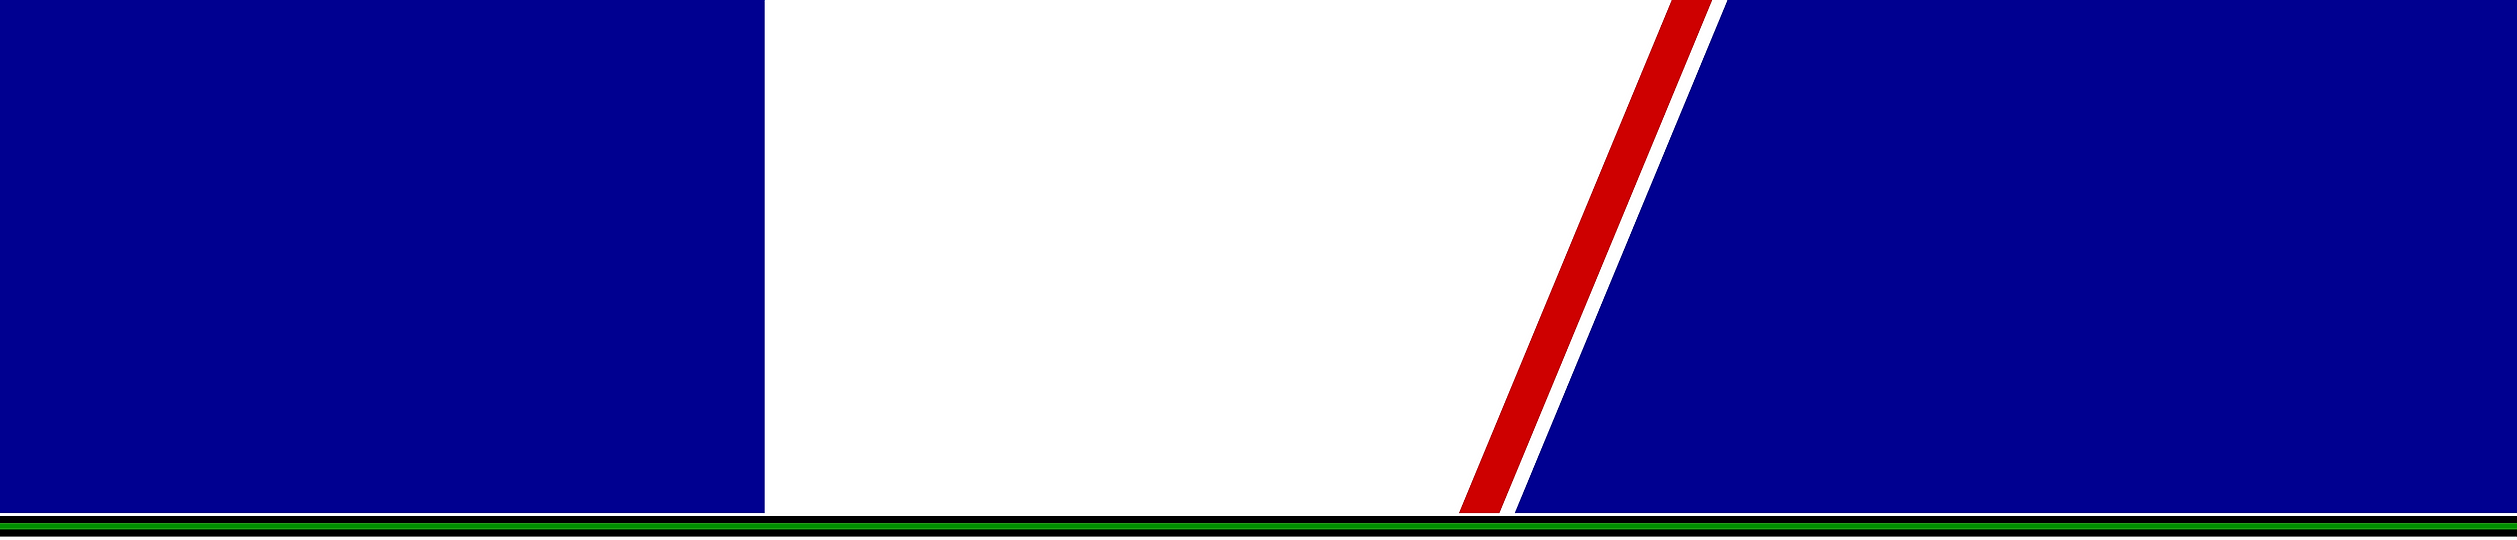 Vector - Main Page Frame.png